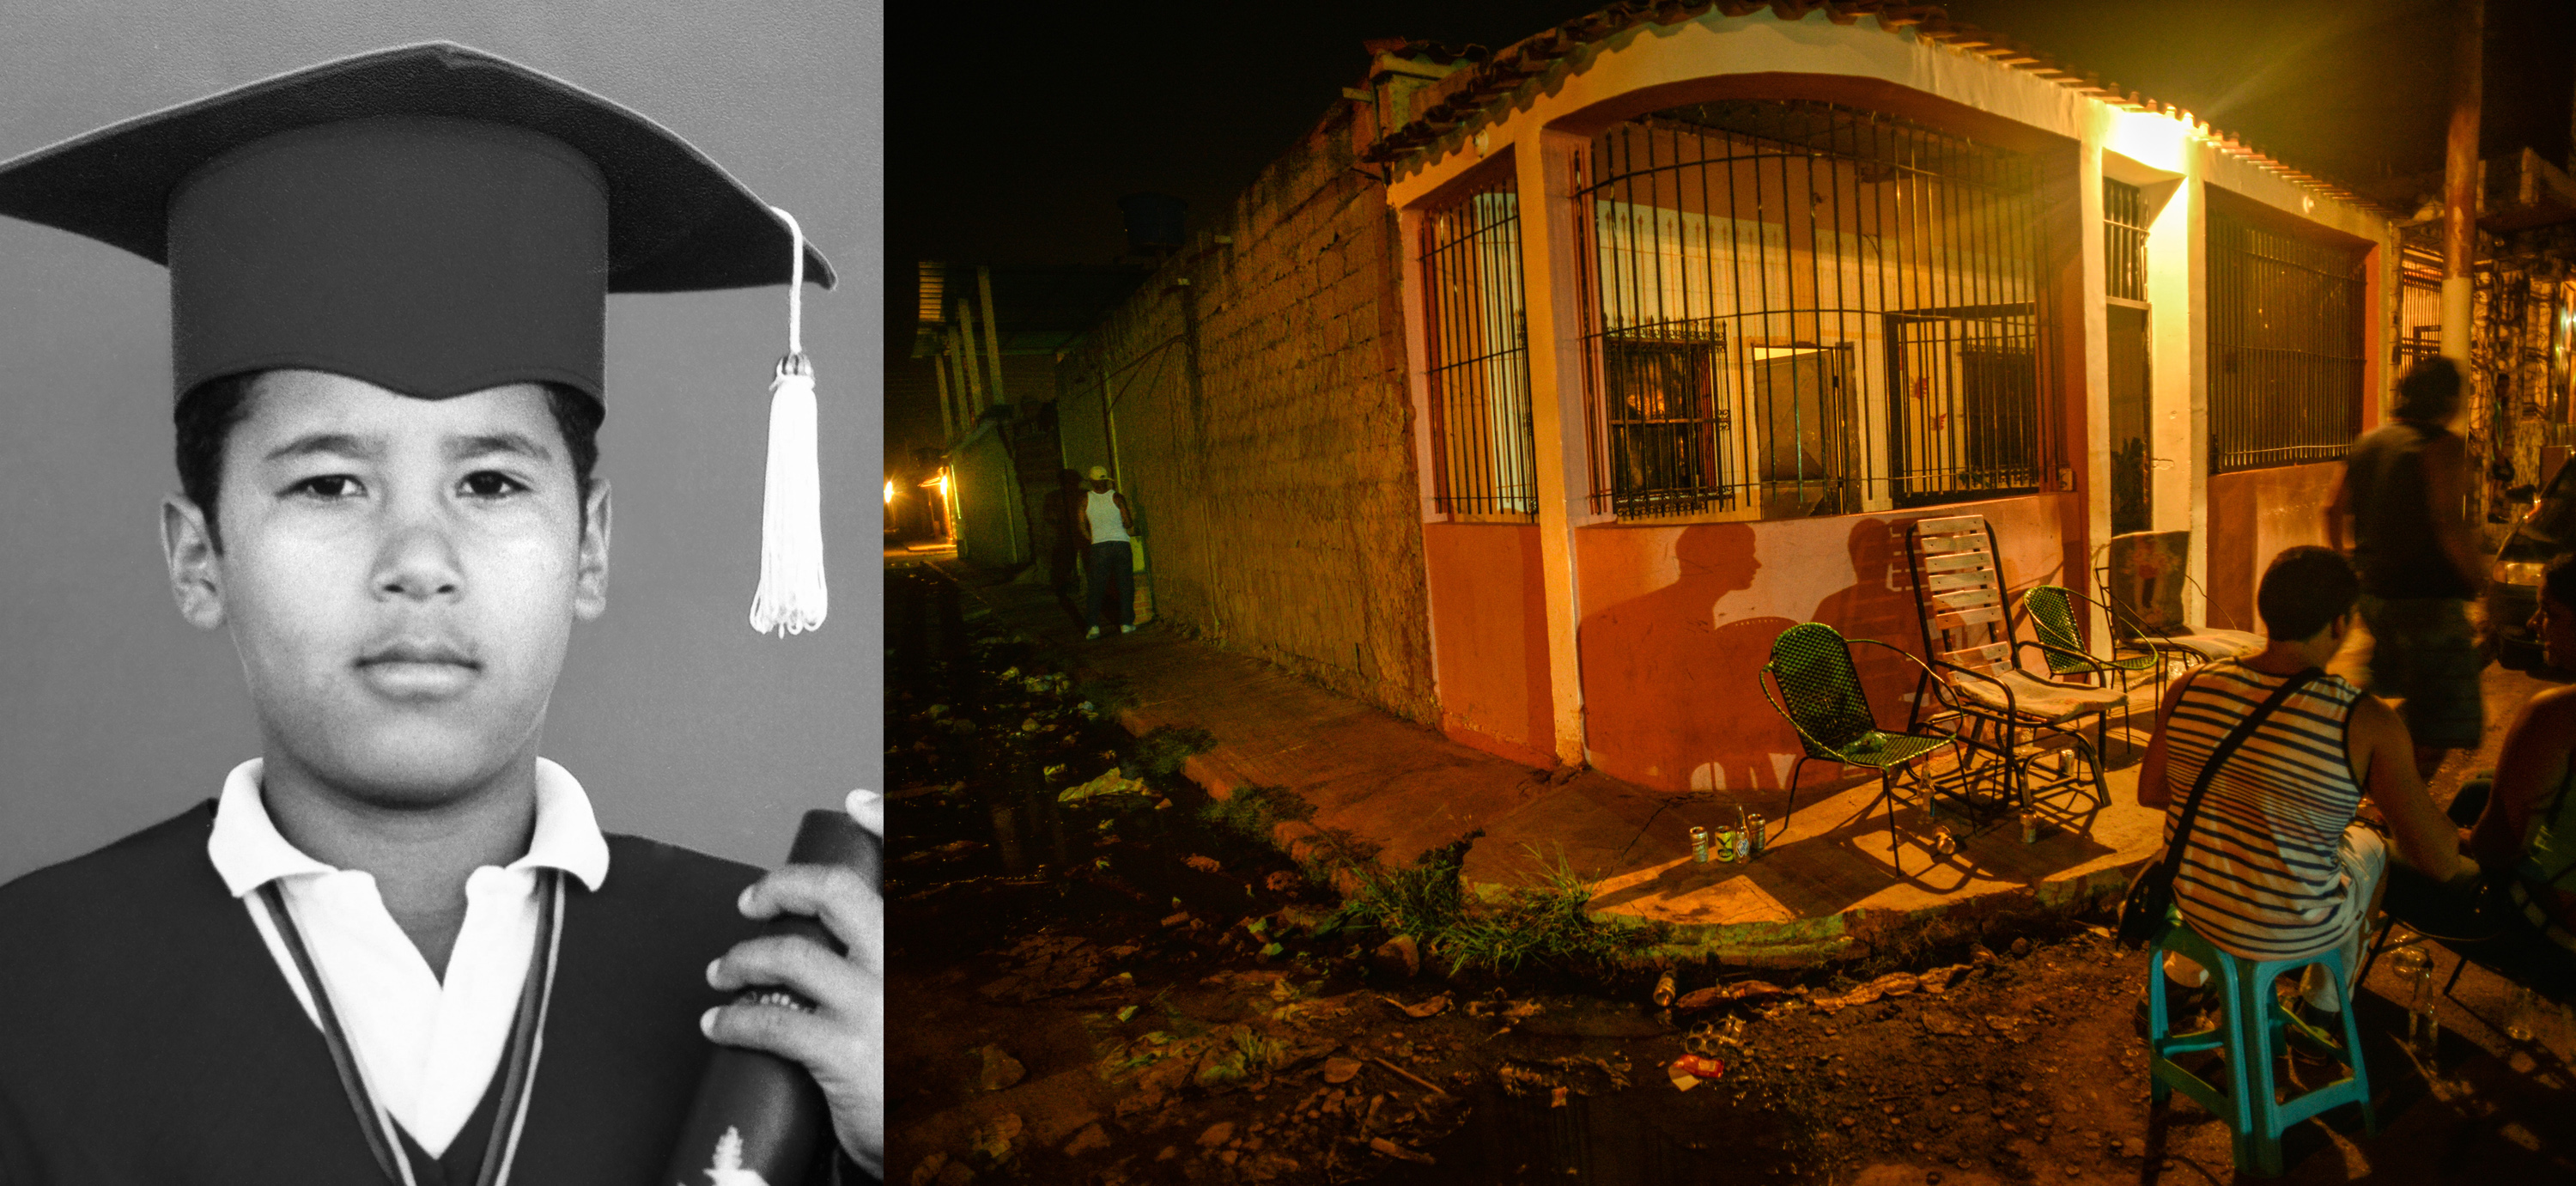 Jorge Antonio Barrios was killed by police when he was 24 years old, in this exact spot in Cagua, Venezuela.